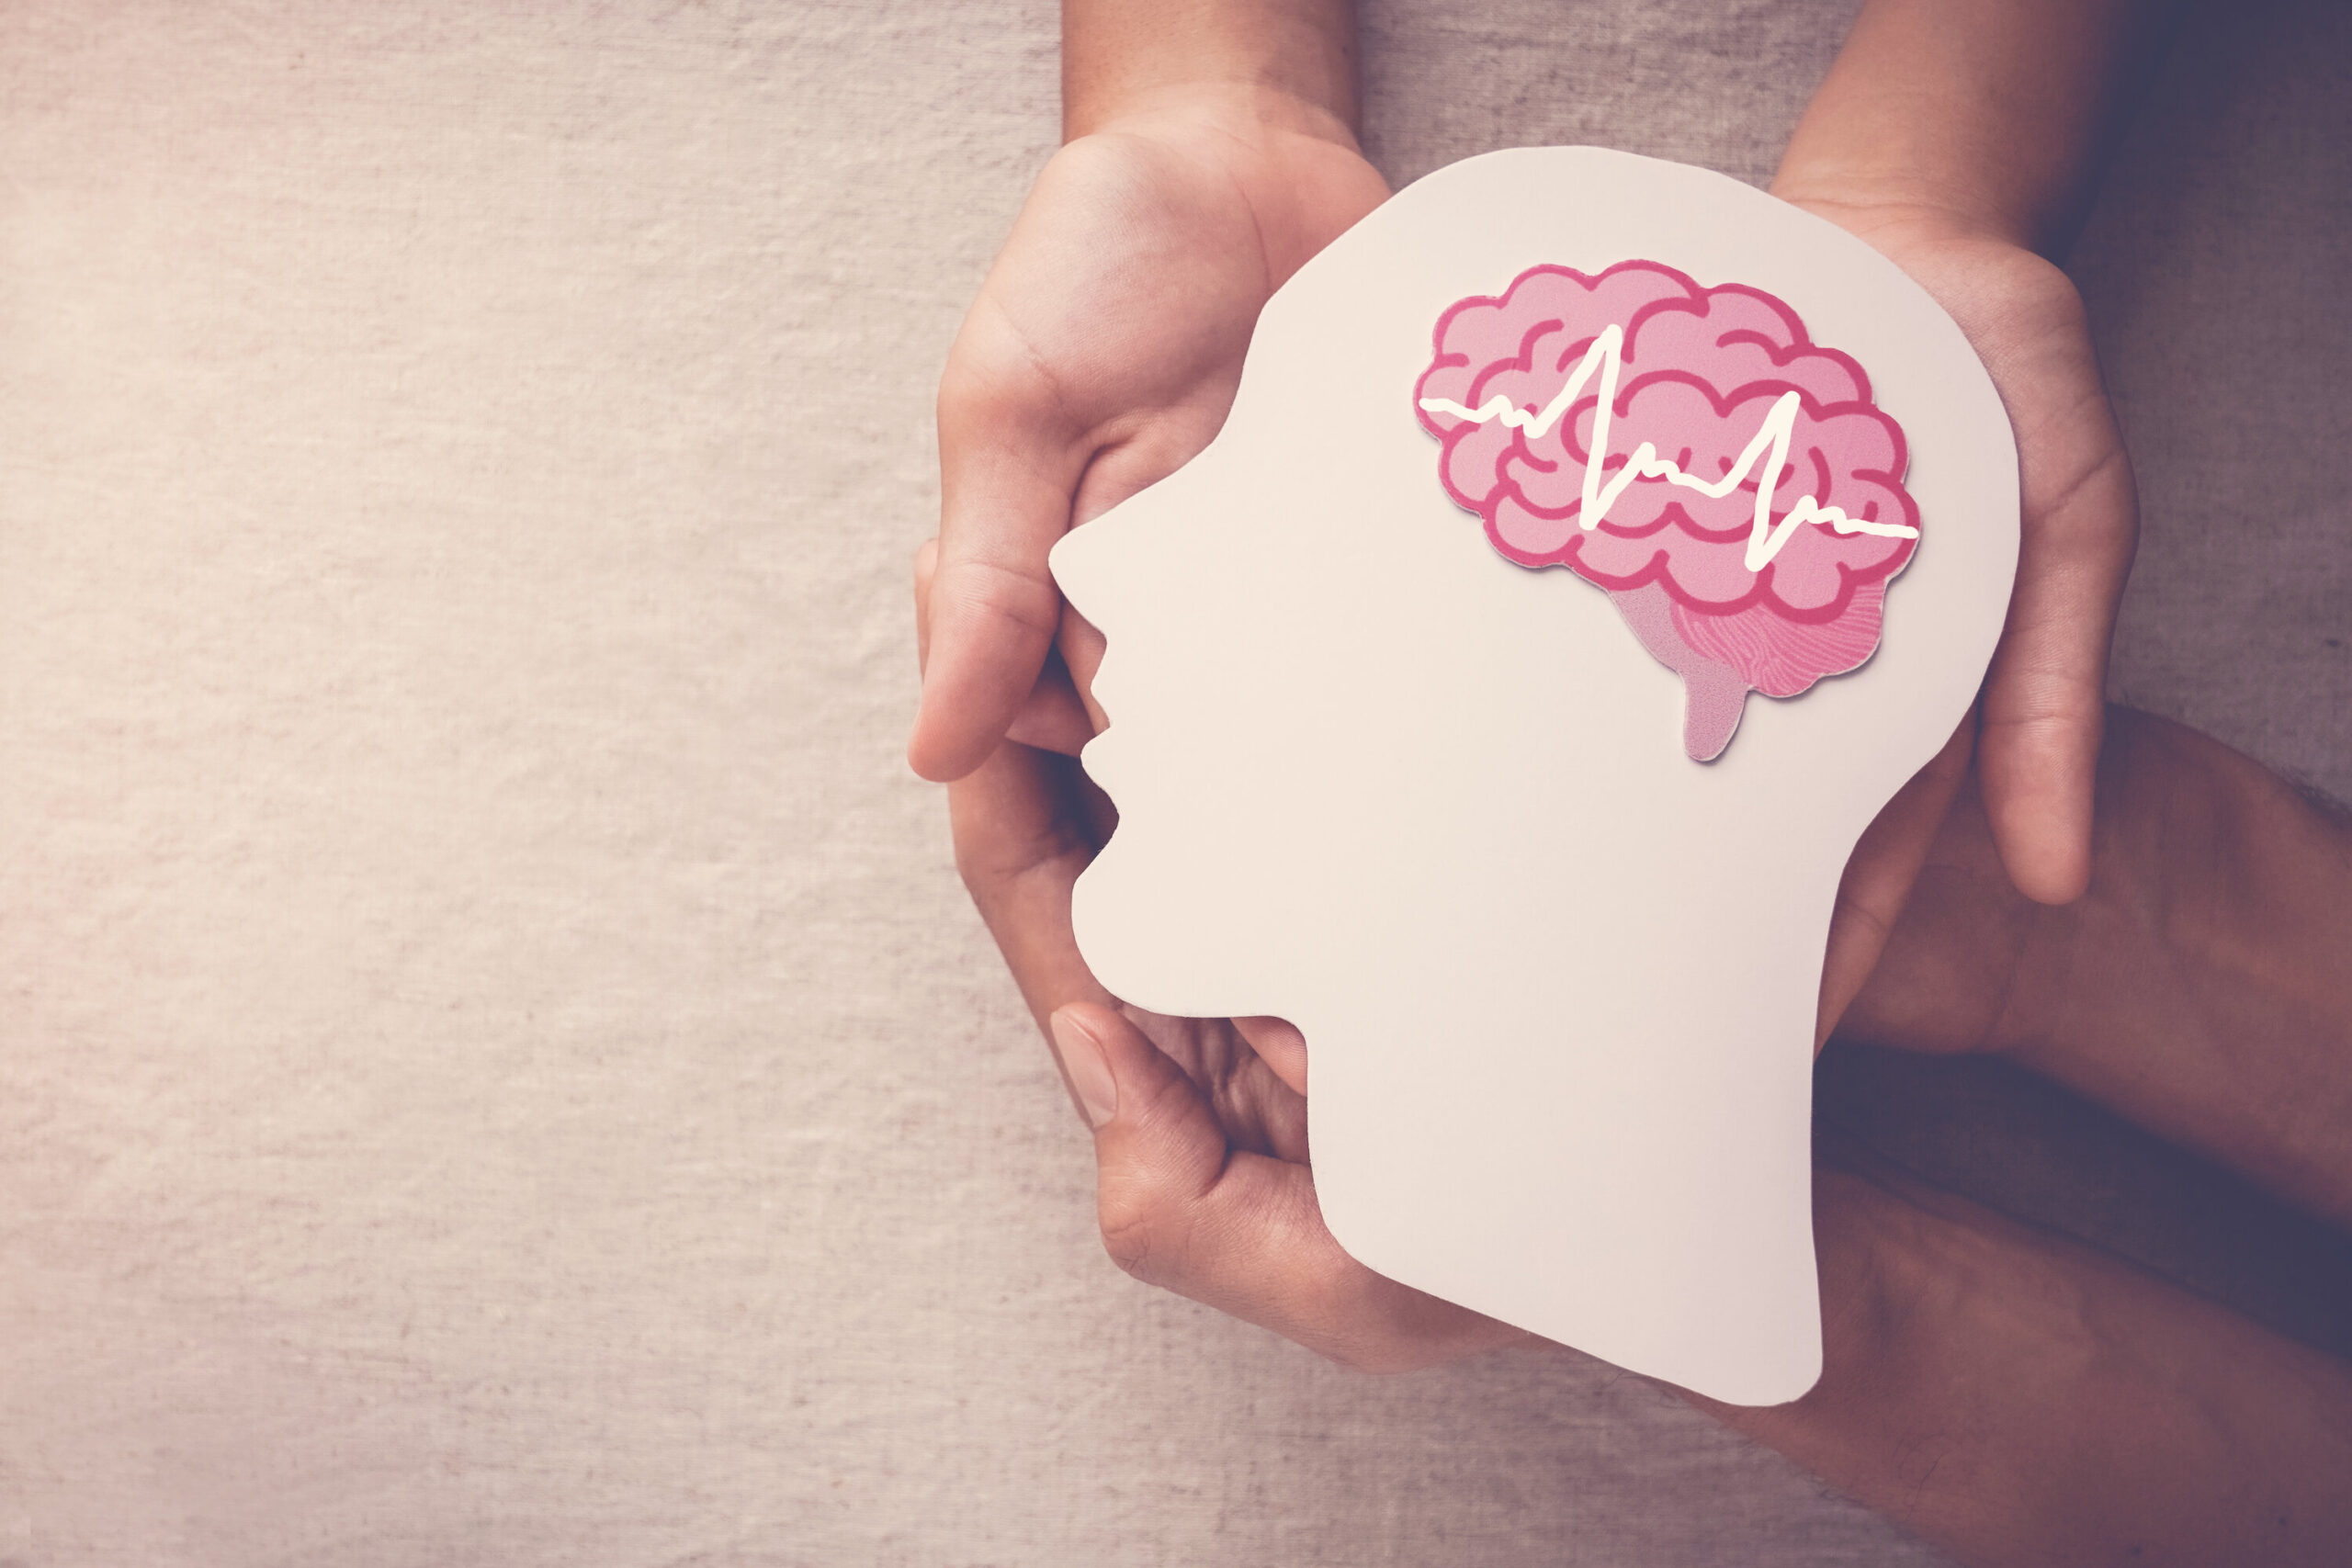 Adult and child hands holding encephalography brain paper cutout